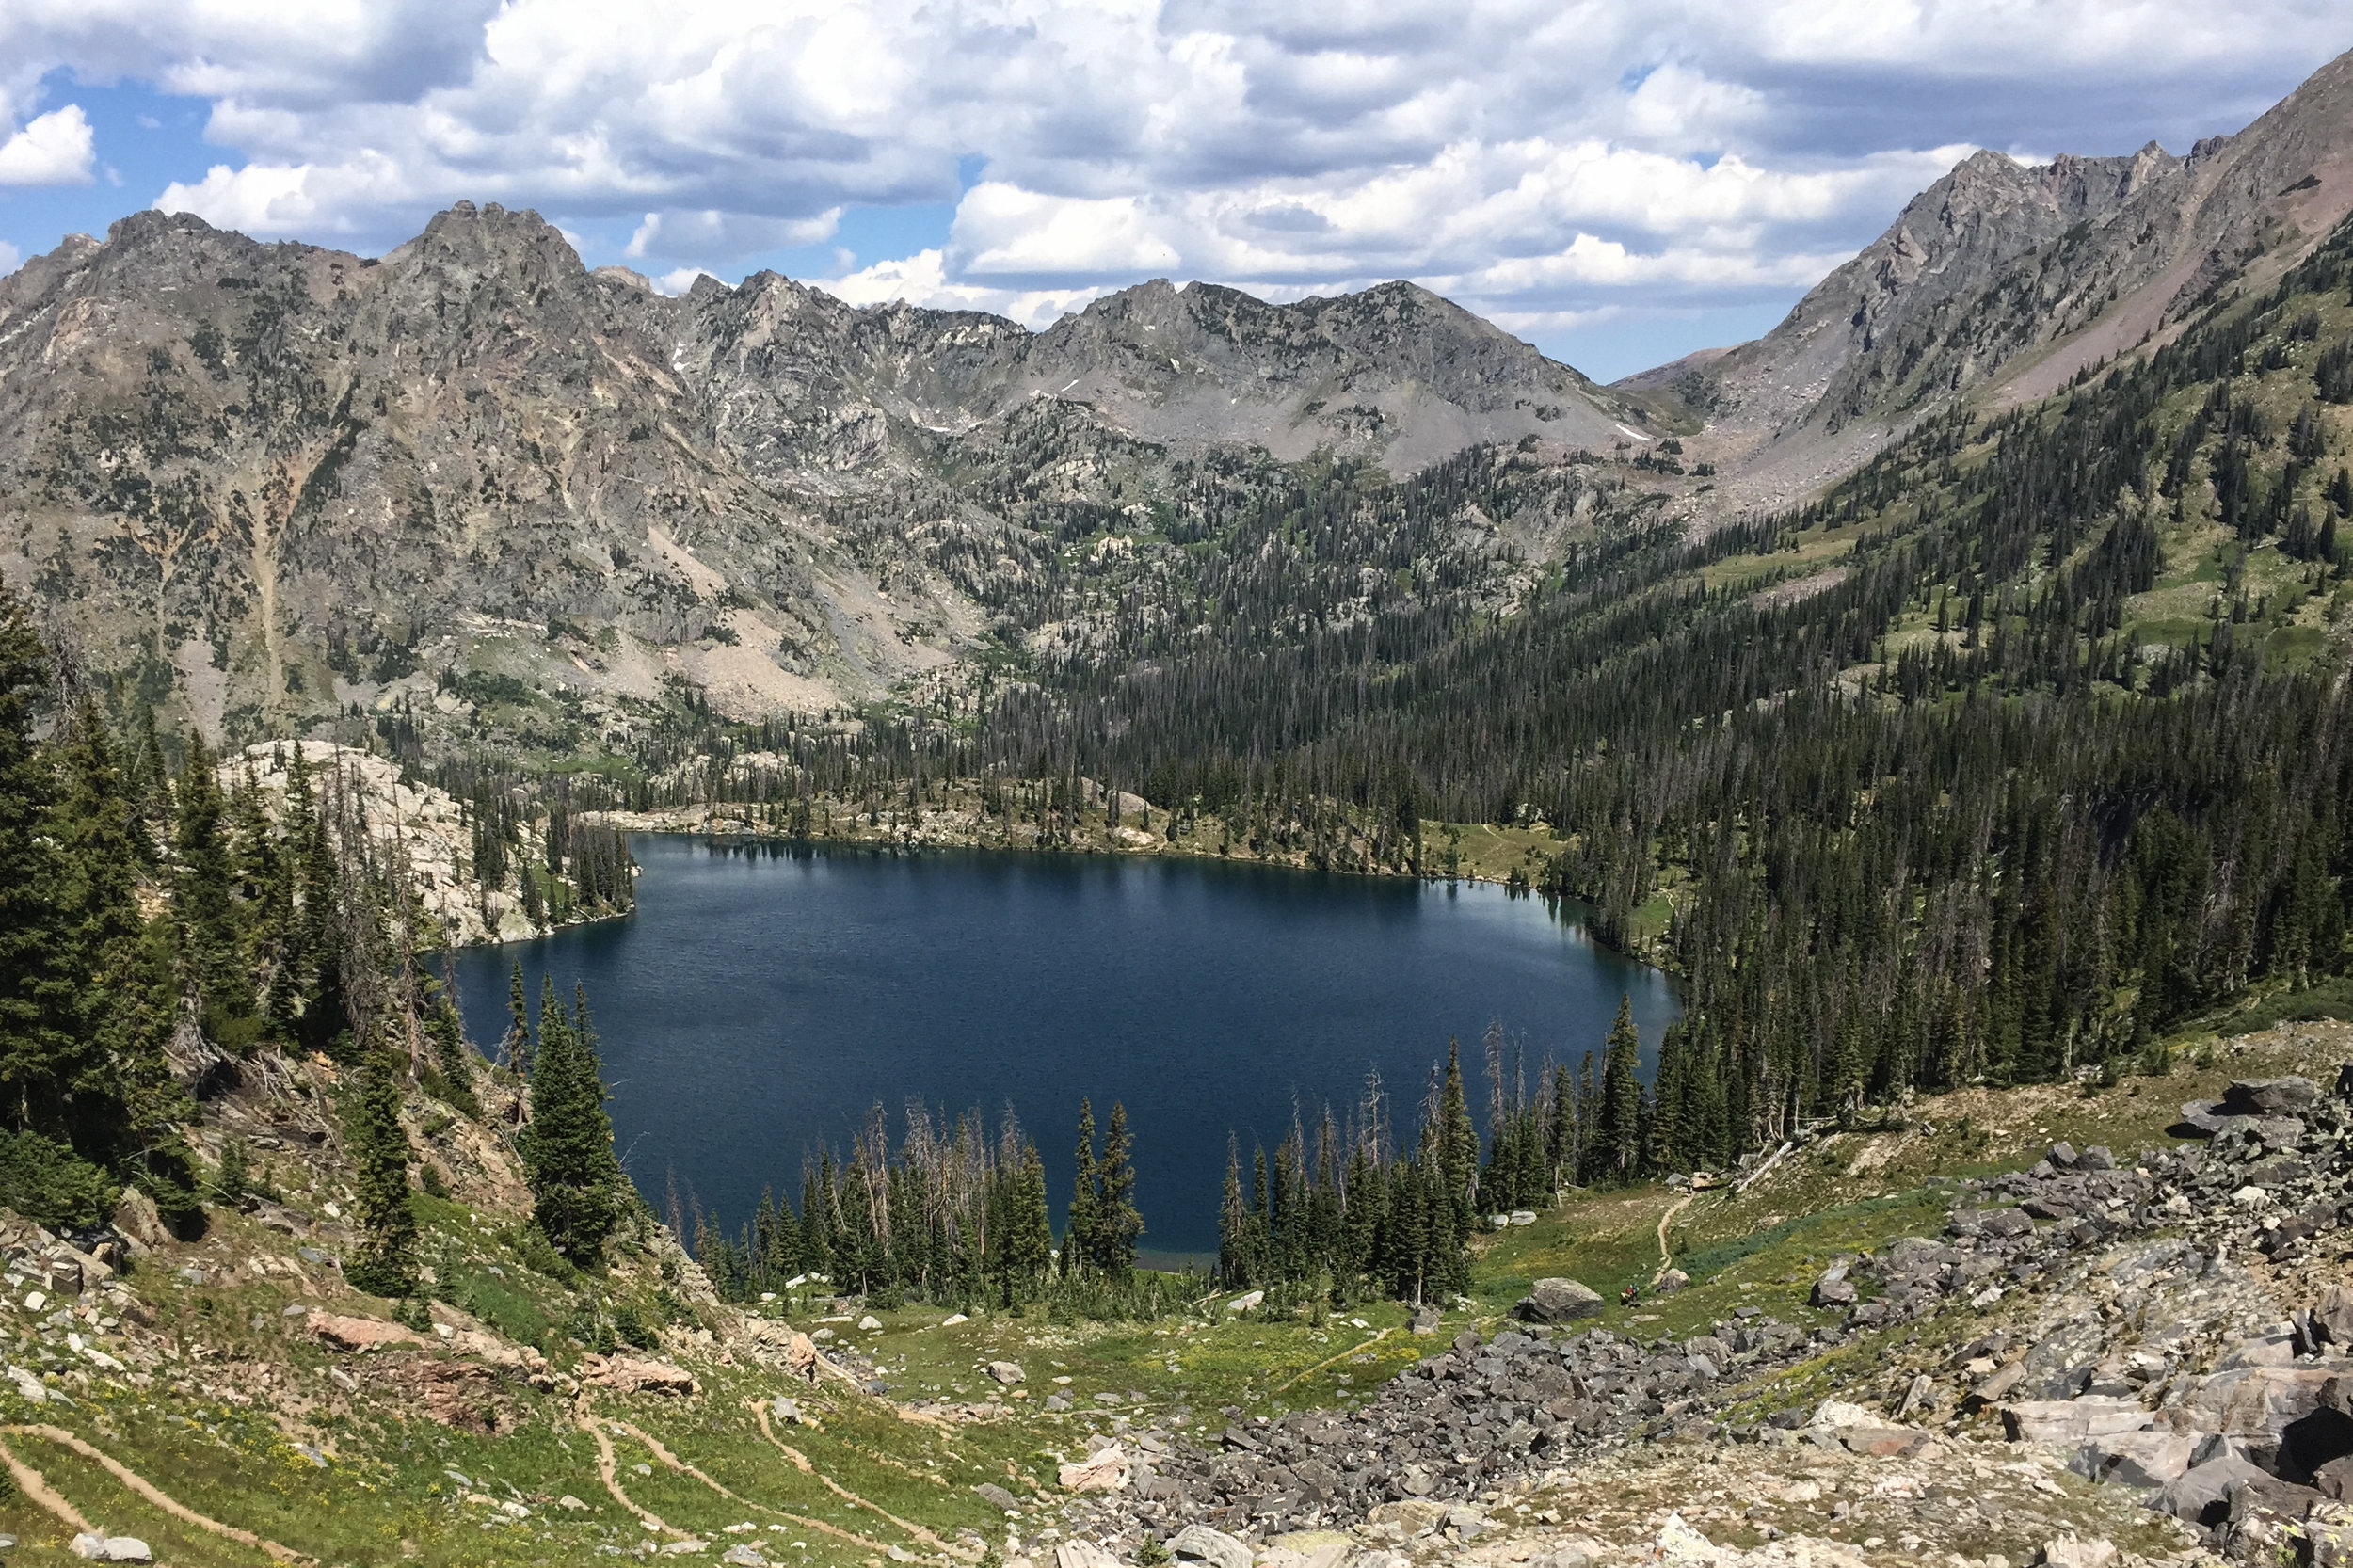 Gilpin Lake, high above Clark, CO in the Zirkel Wilderness area of Routt National Forest.